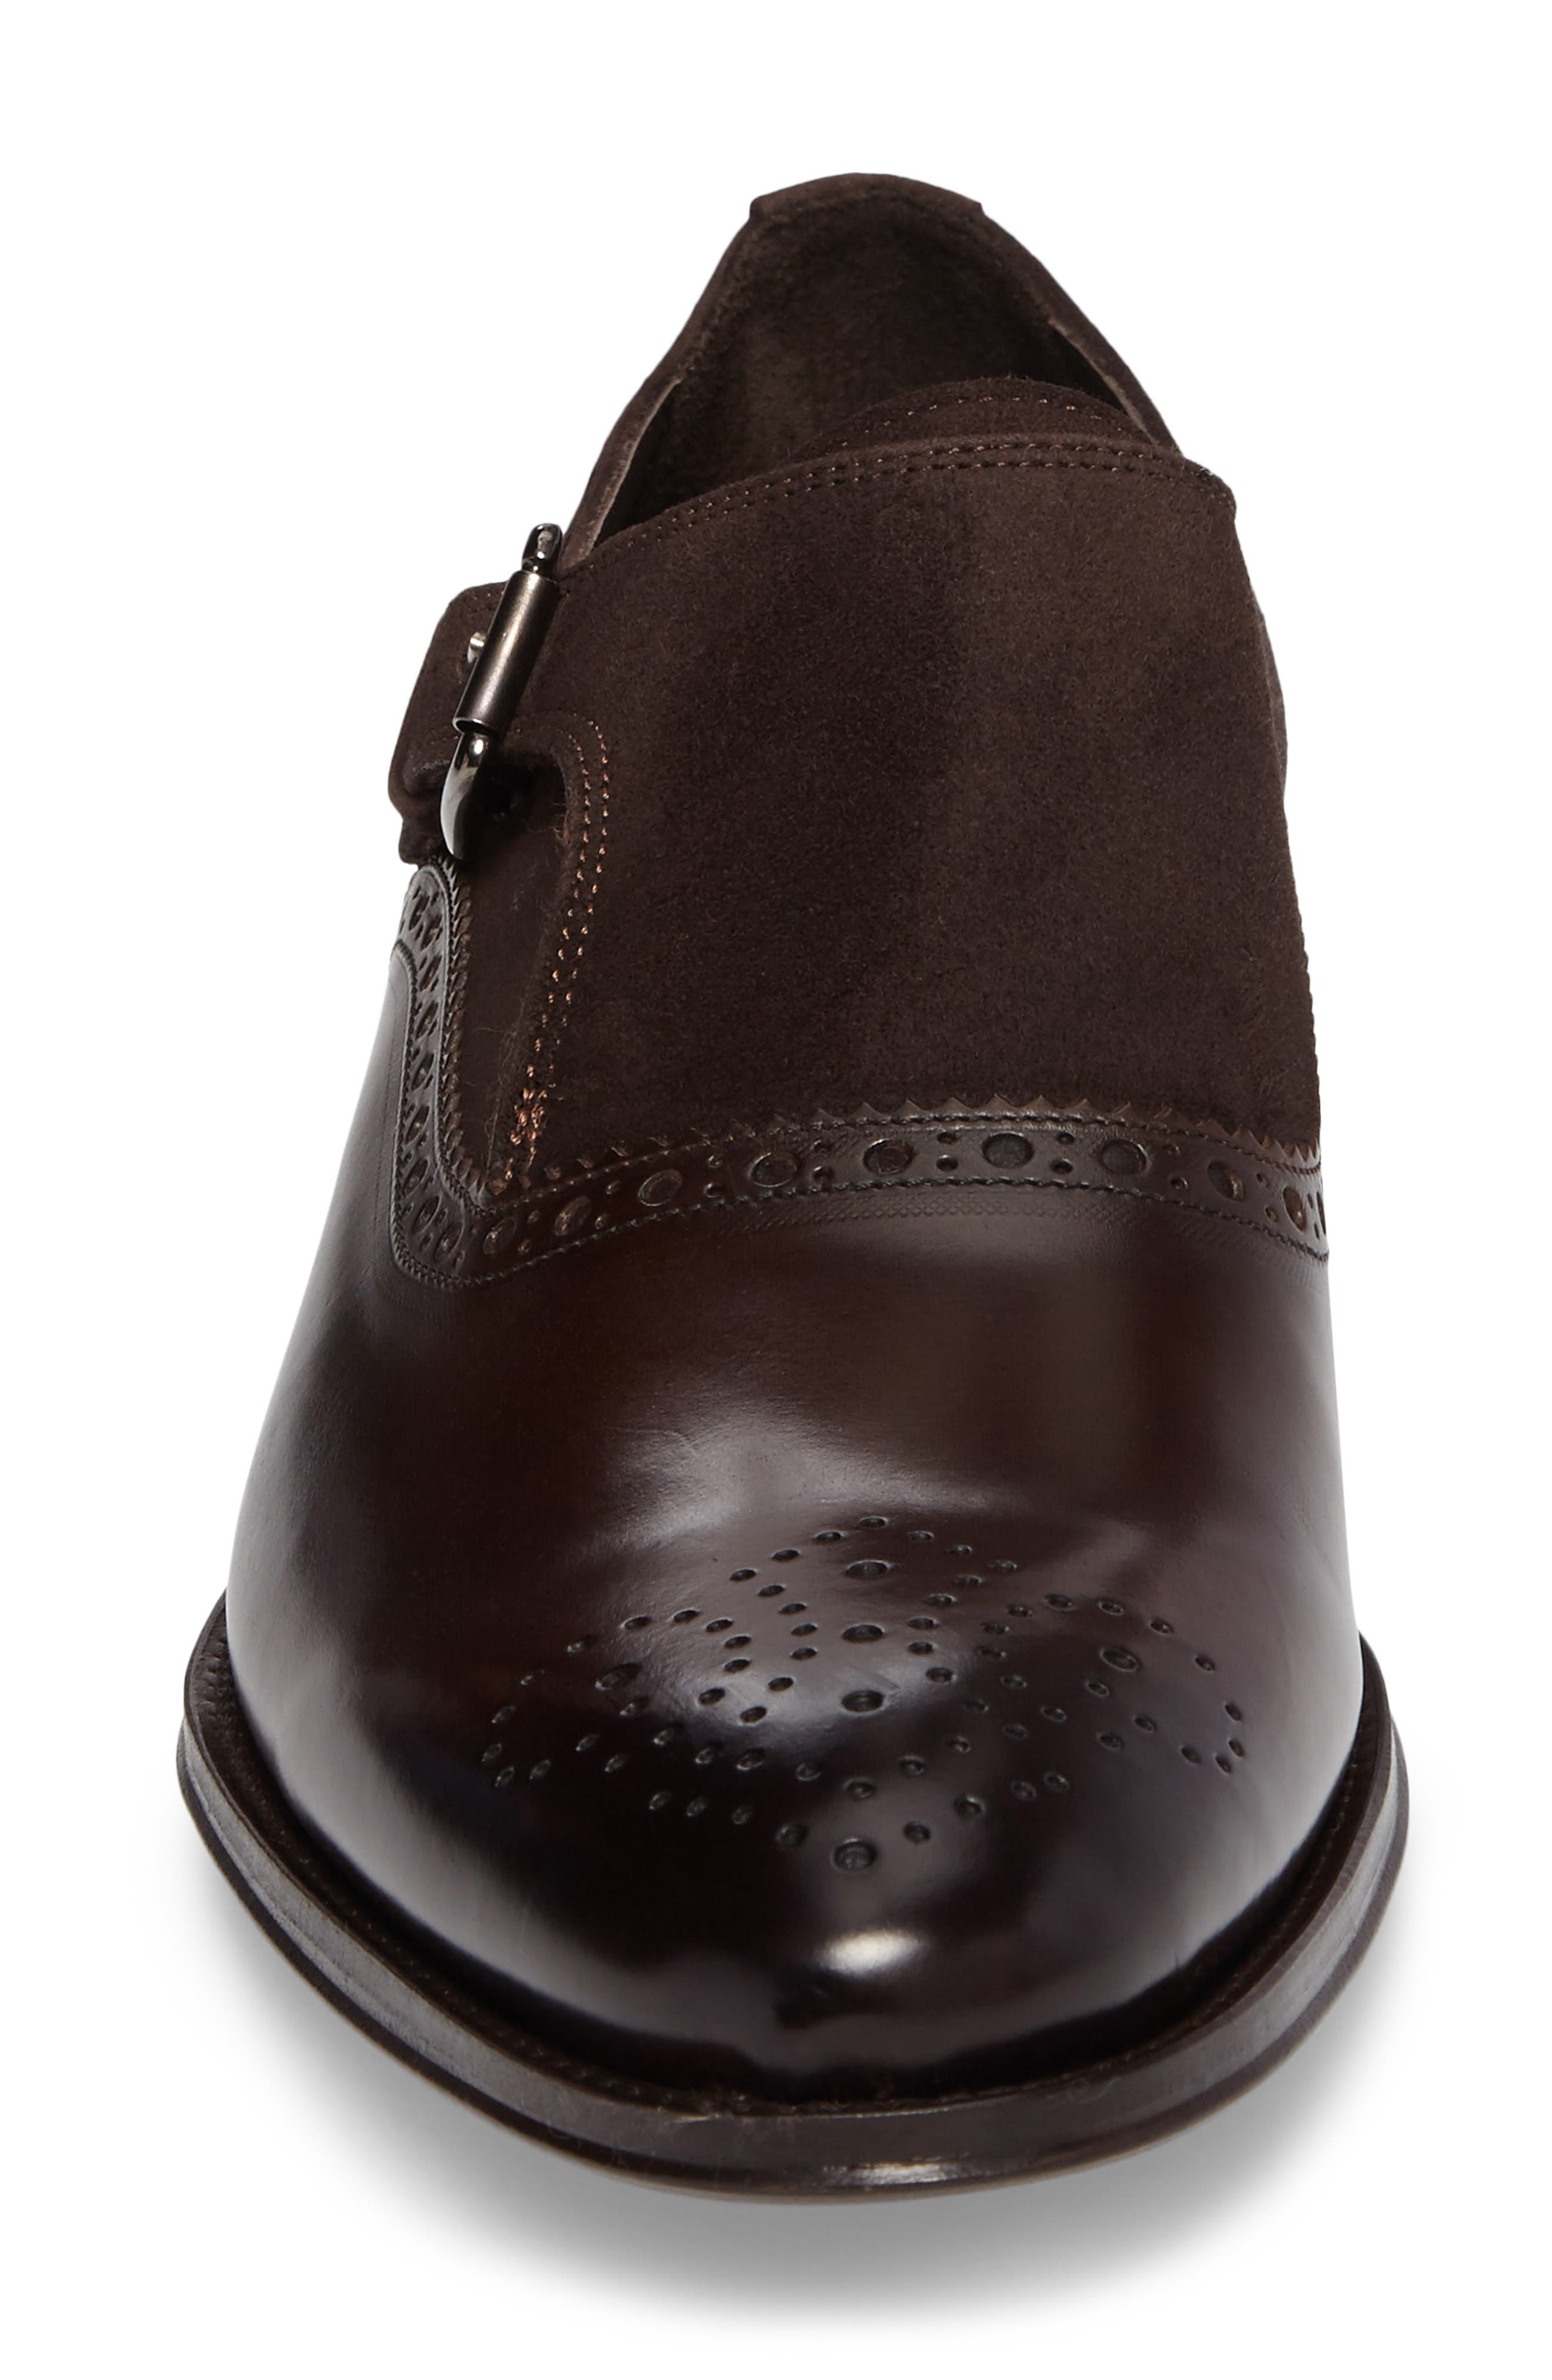 Arcadia Monk Strap Shoe,                             Alternate thumbnail 4, color,                             Brown Leather/ Suede